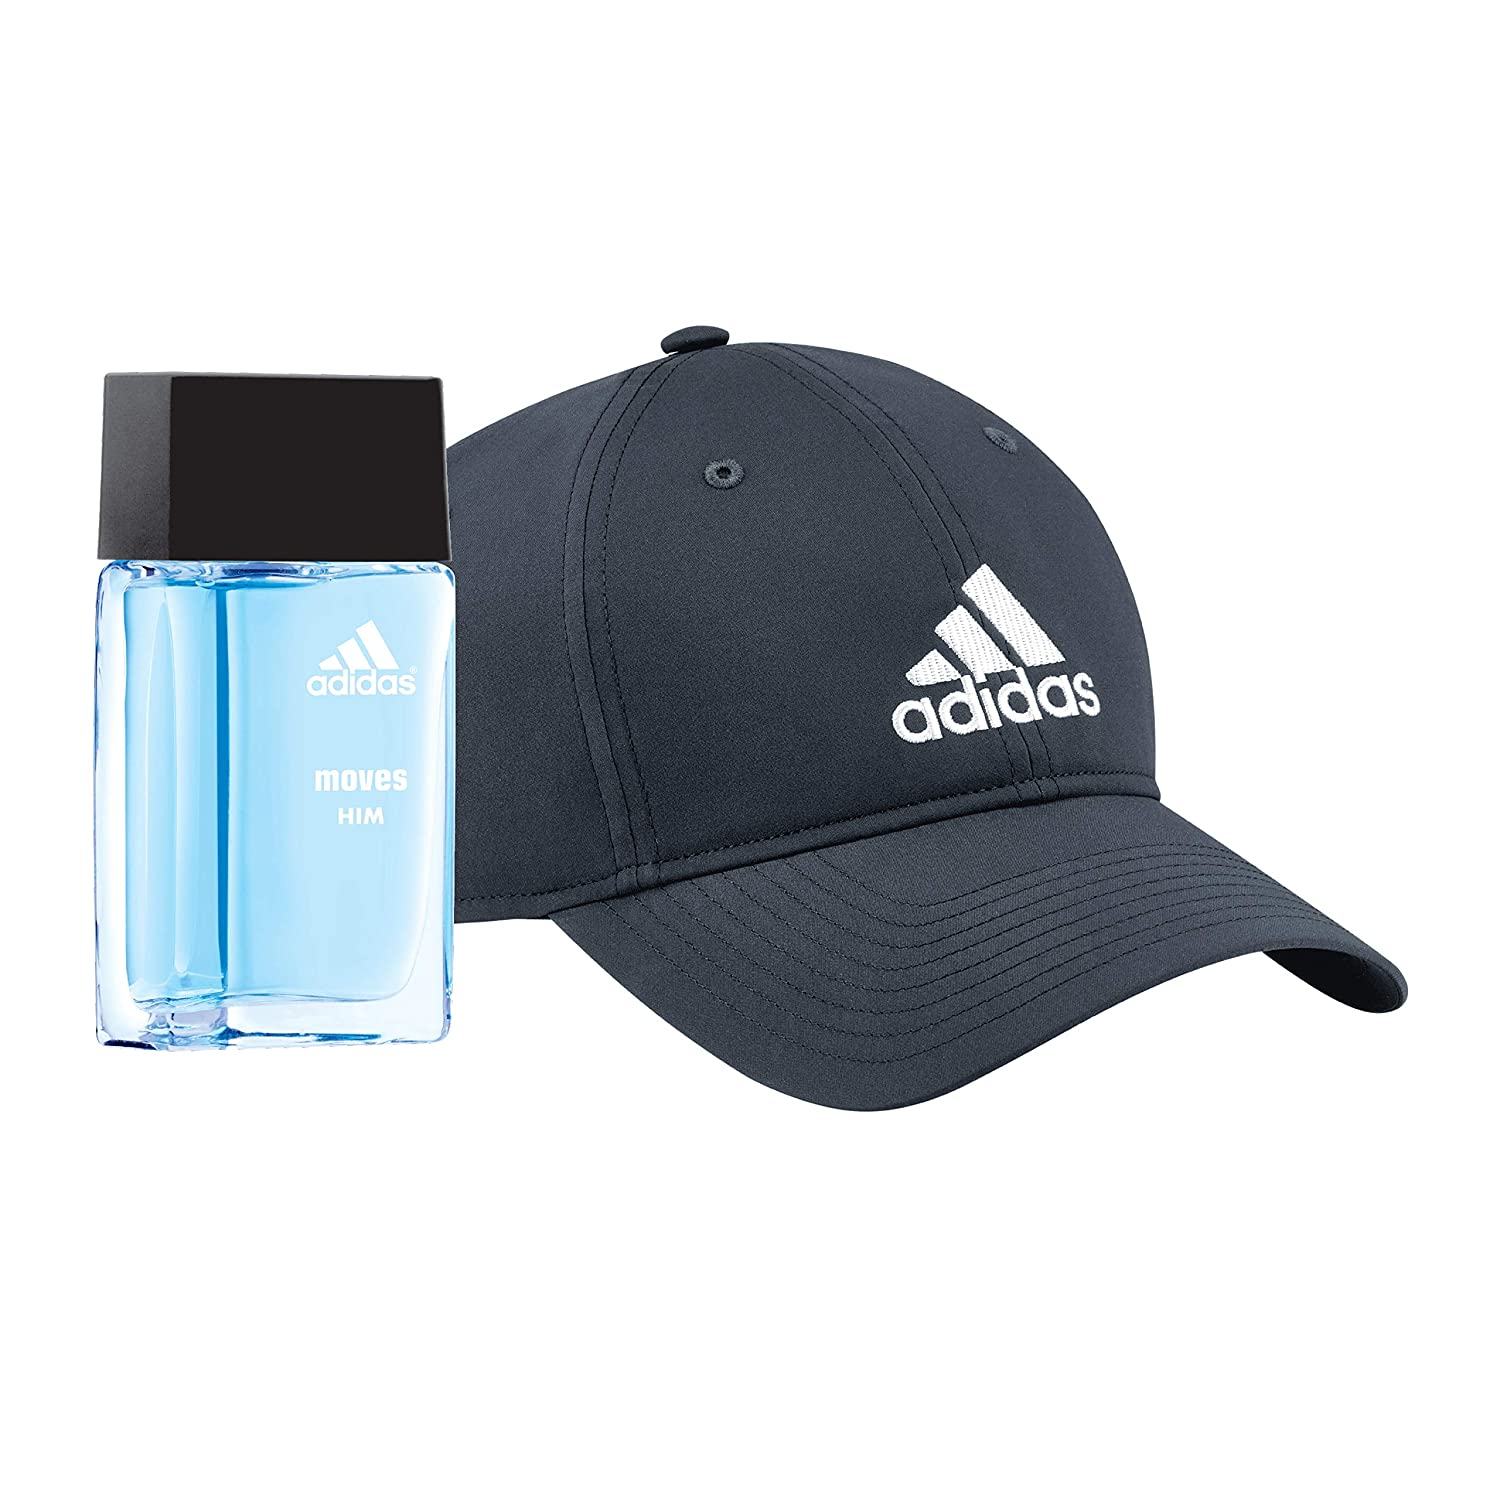 Adidas Fashion Themed Sale item Quality inspection 2 Set Piece Gift